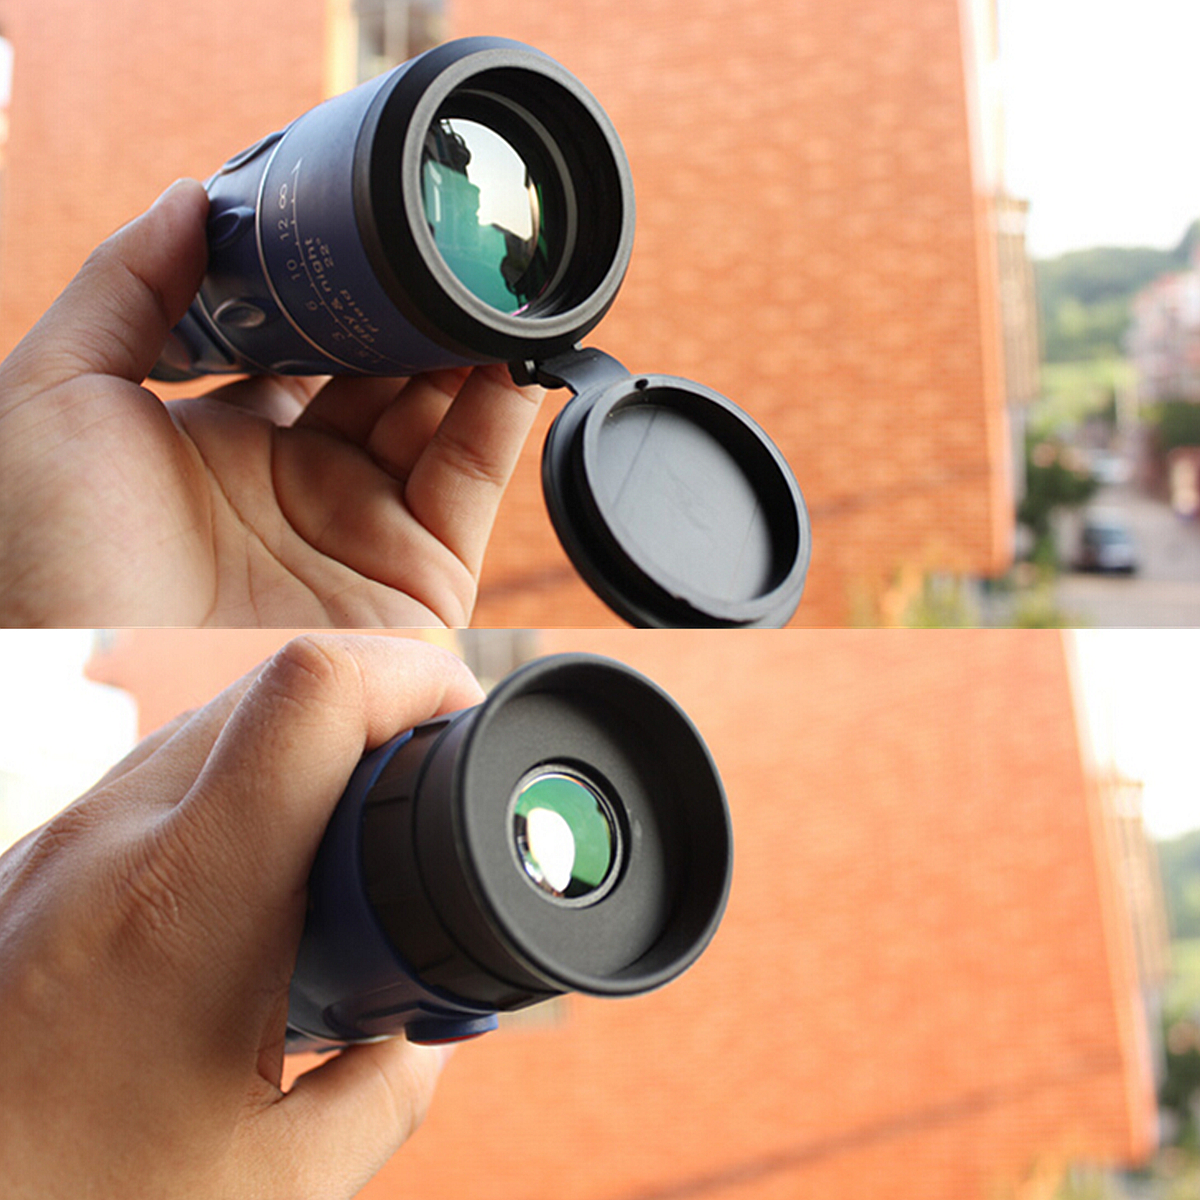 26 x 52 HD Clear Zoom Optical Monocular Telescope Hiking Camping Hunting Night forcamping Vision 66M/8000M